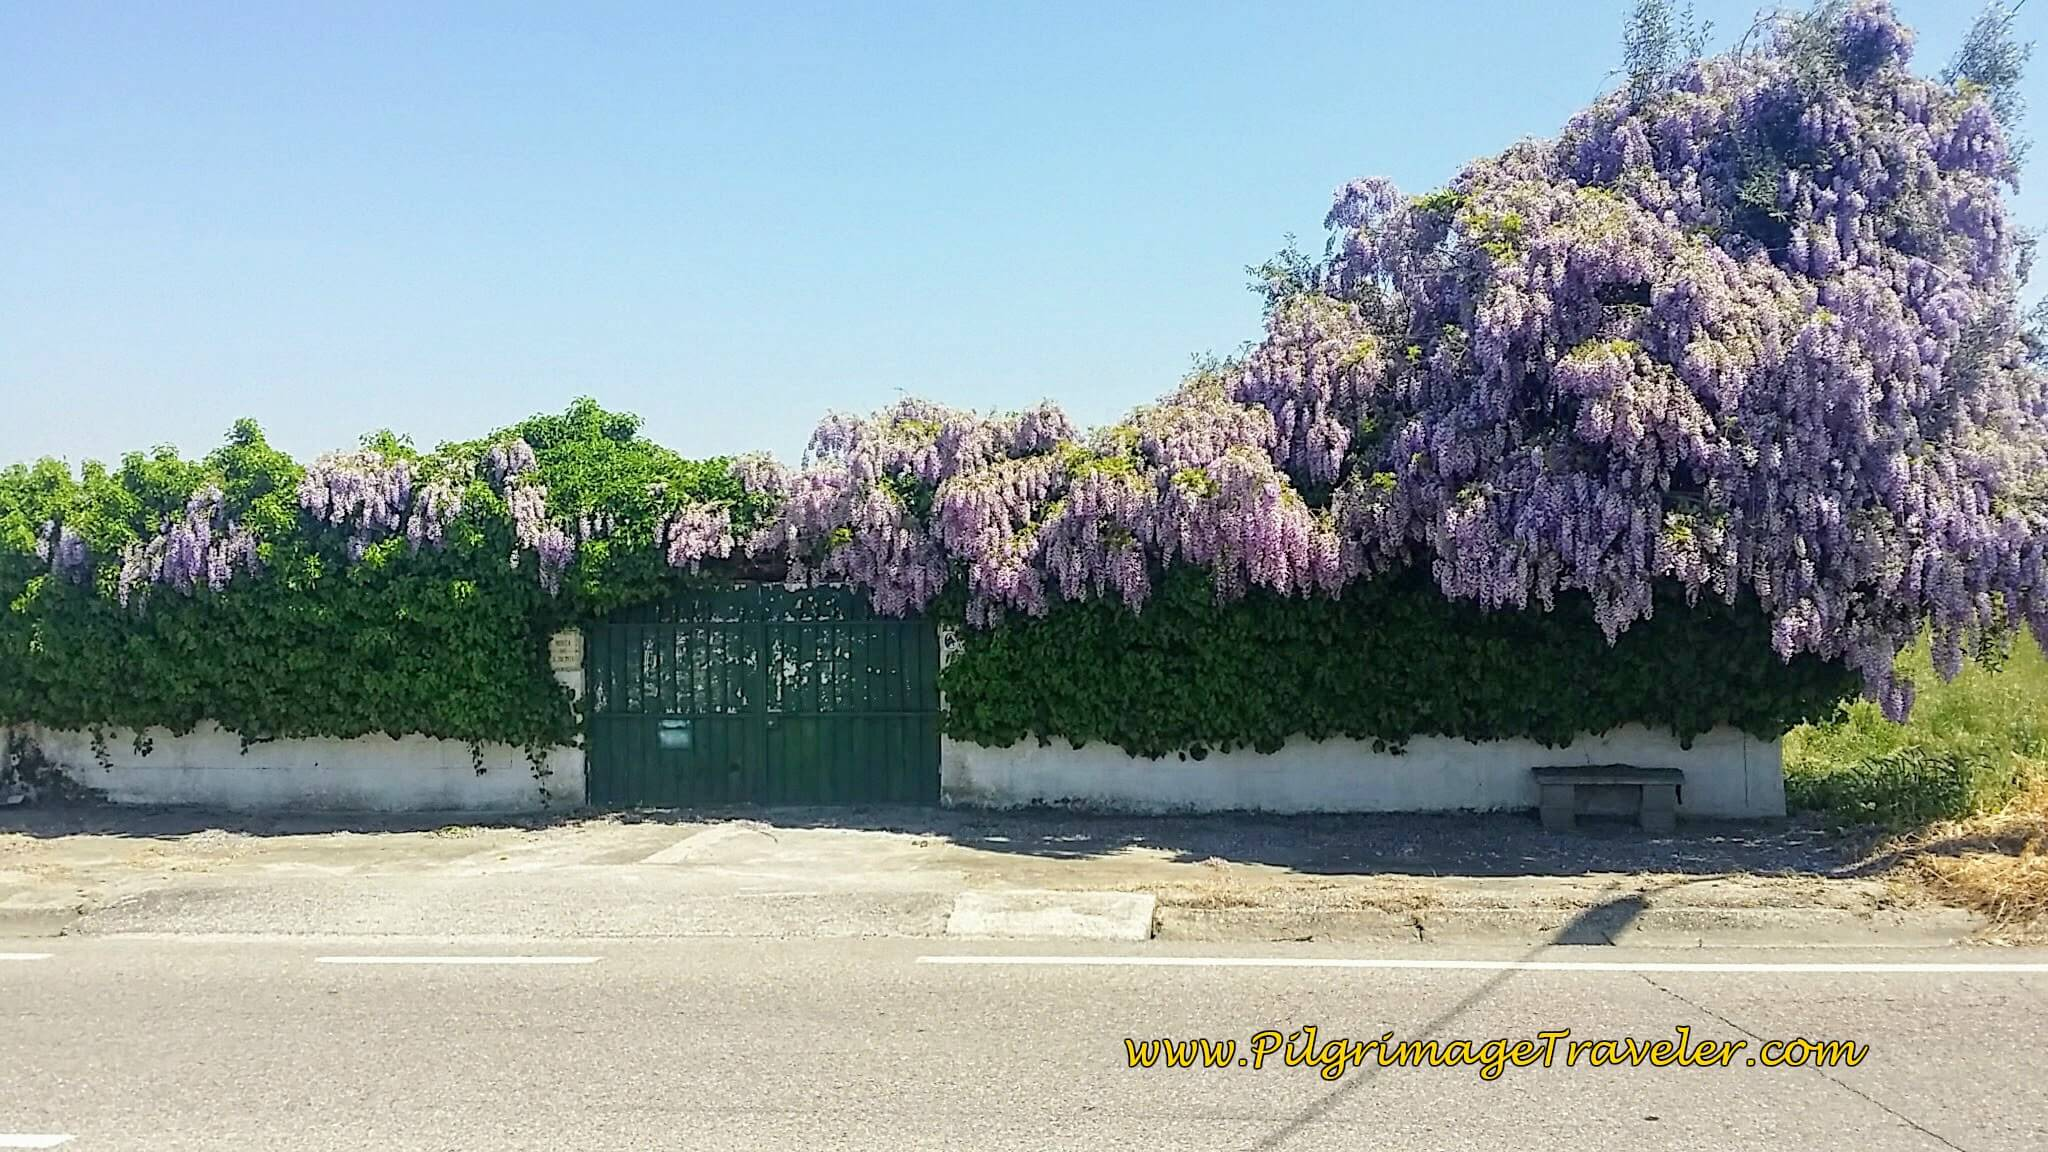 Wisteria Along the N110